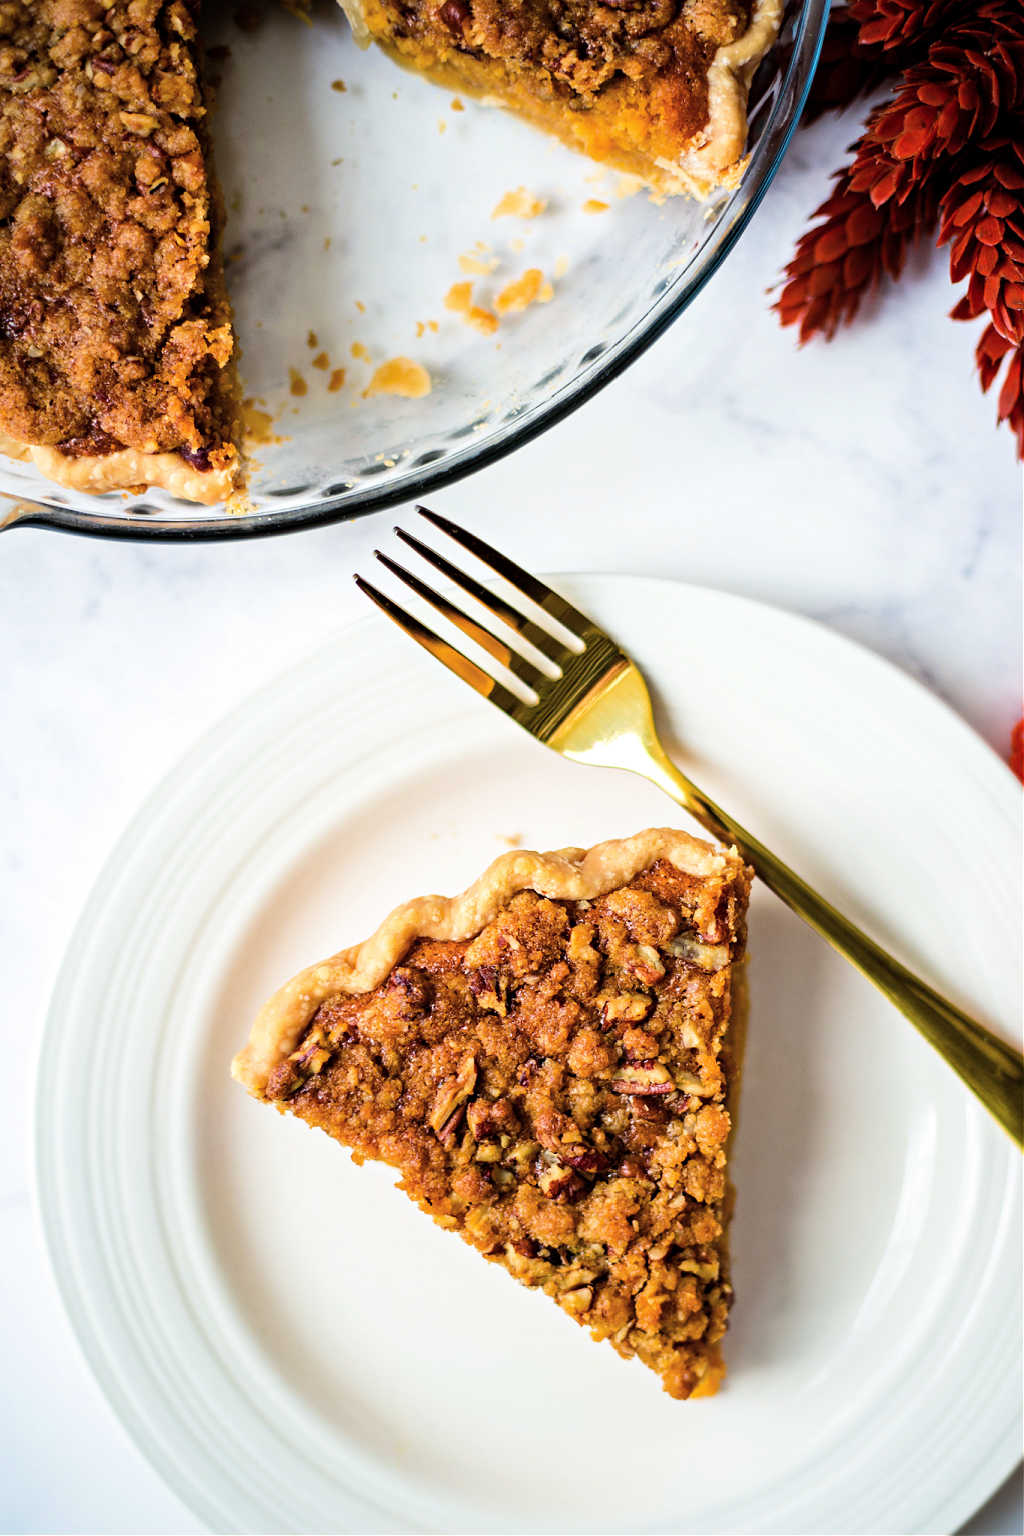 a slice of sweet potato pie on a white plate on a table